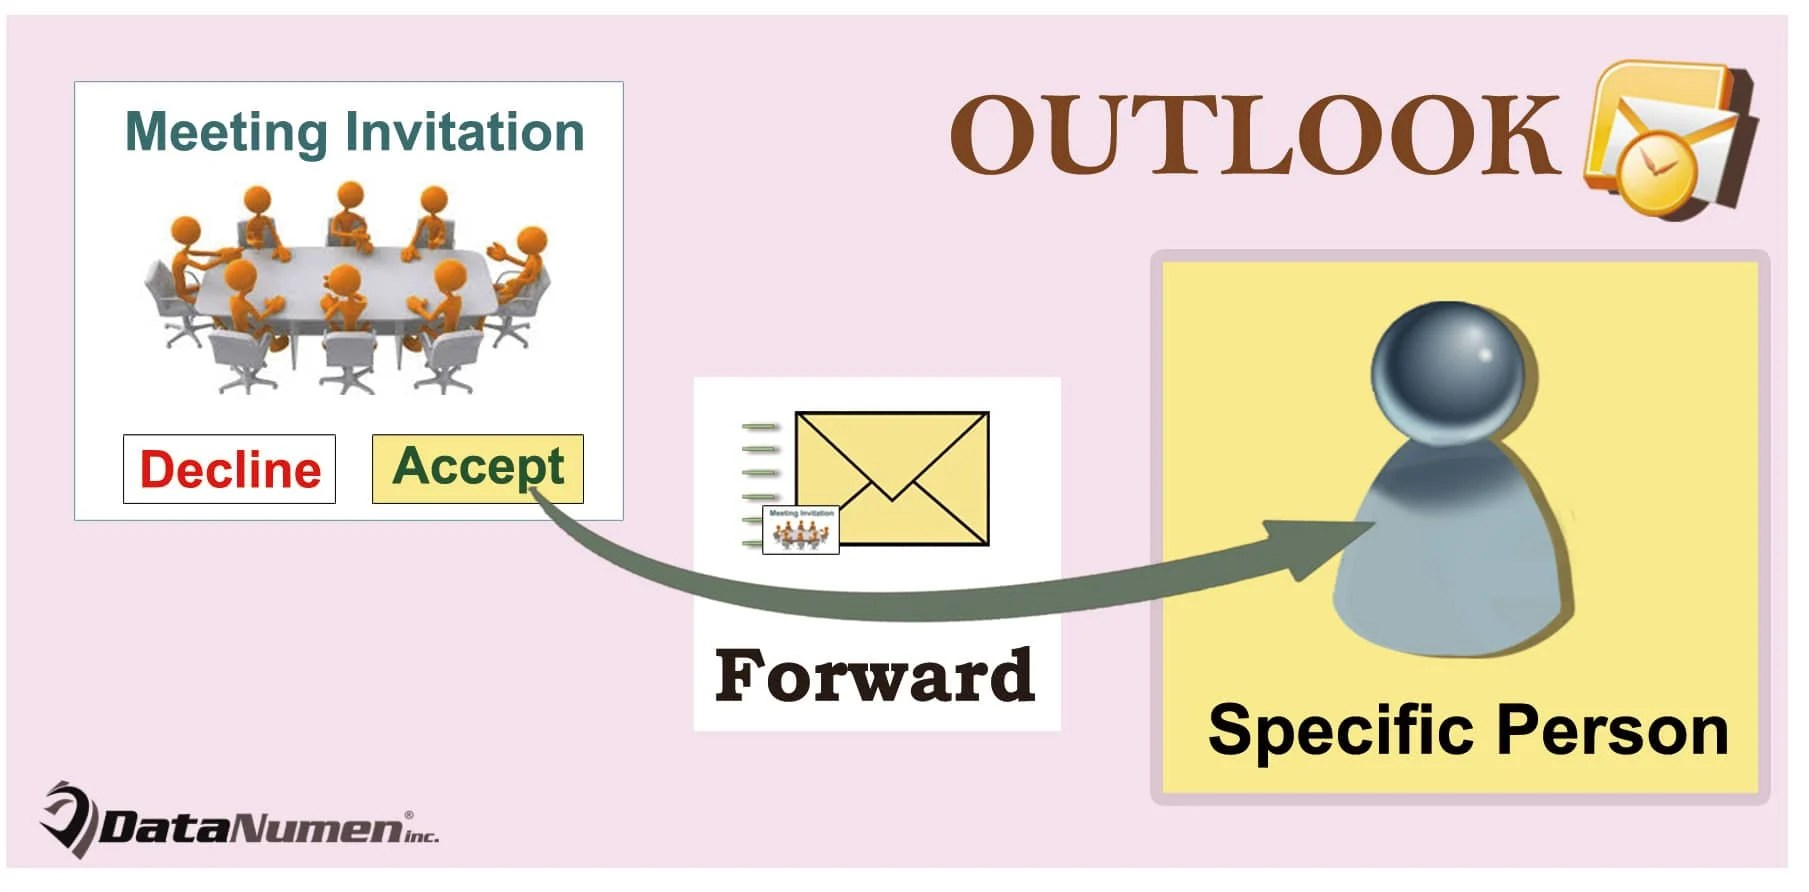 How To Auto Forward A Meeting Invitation Specific Person When